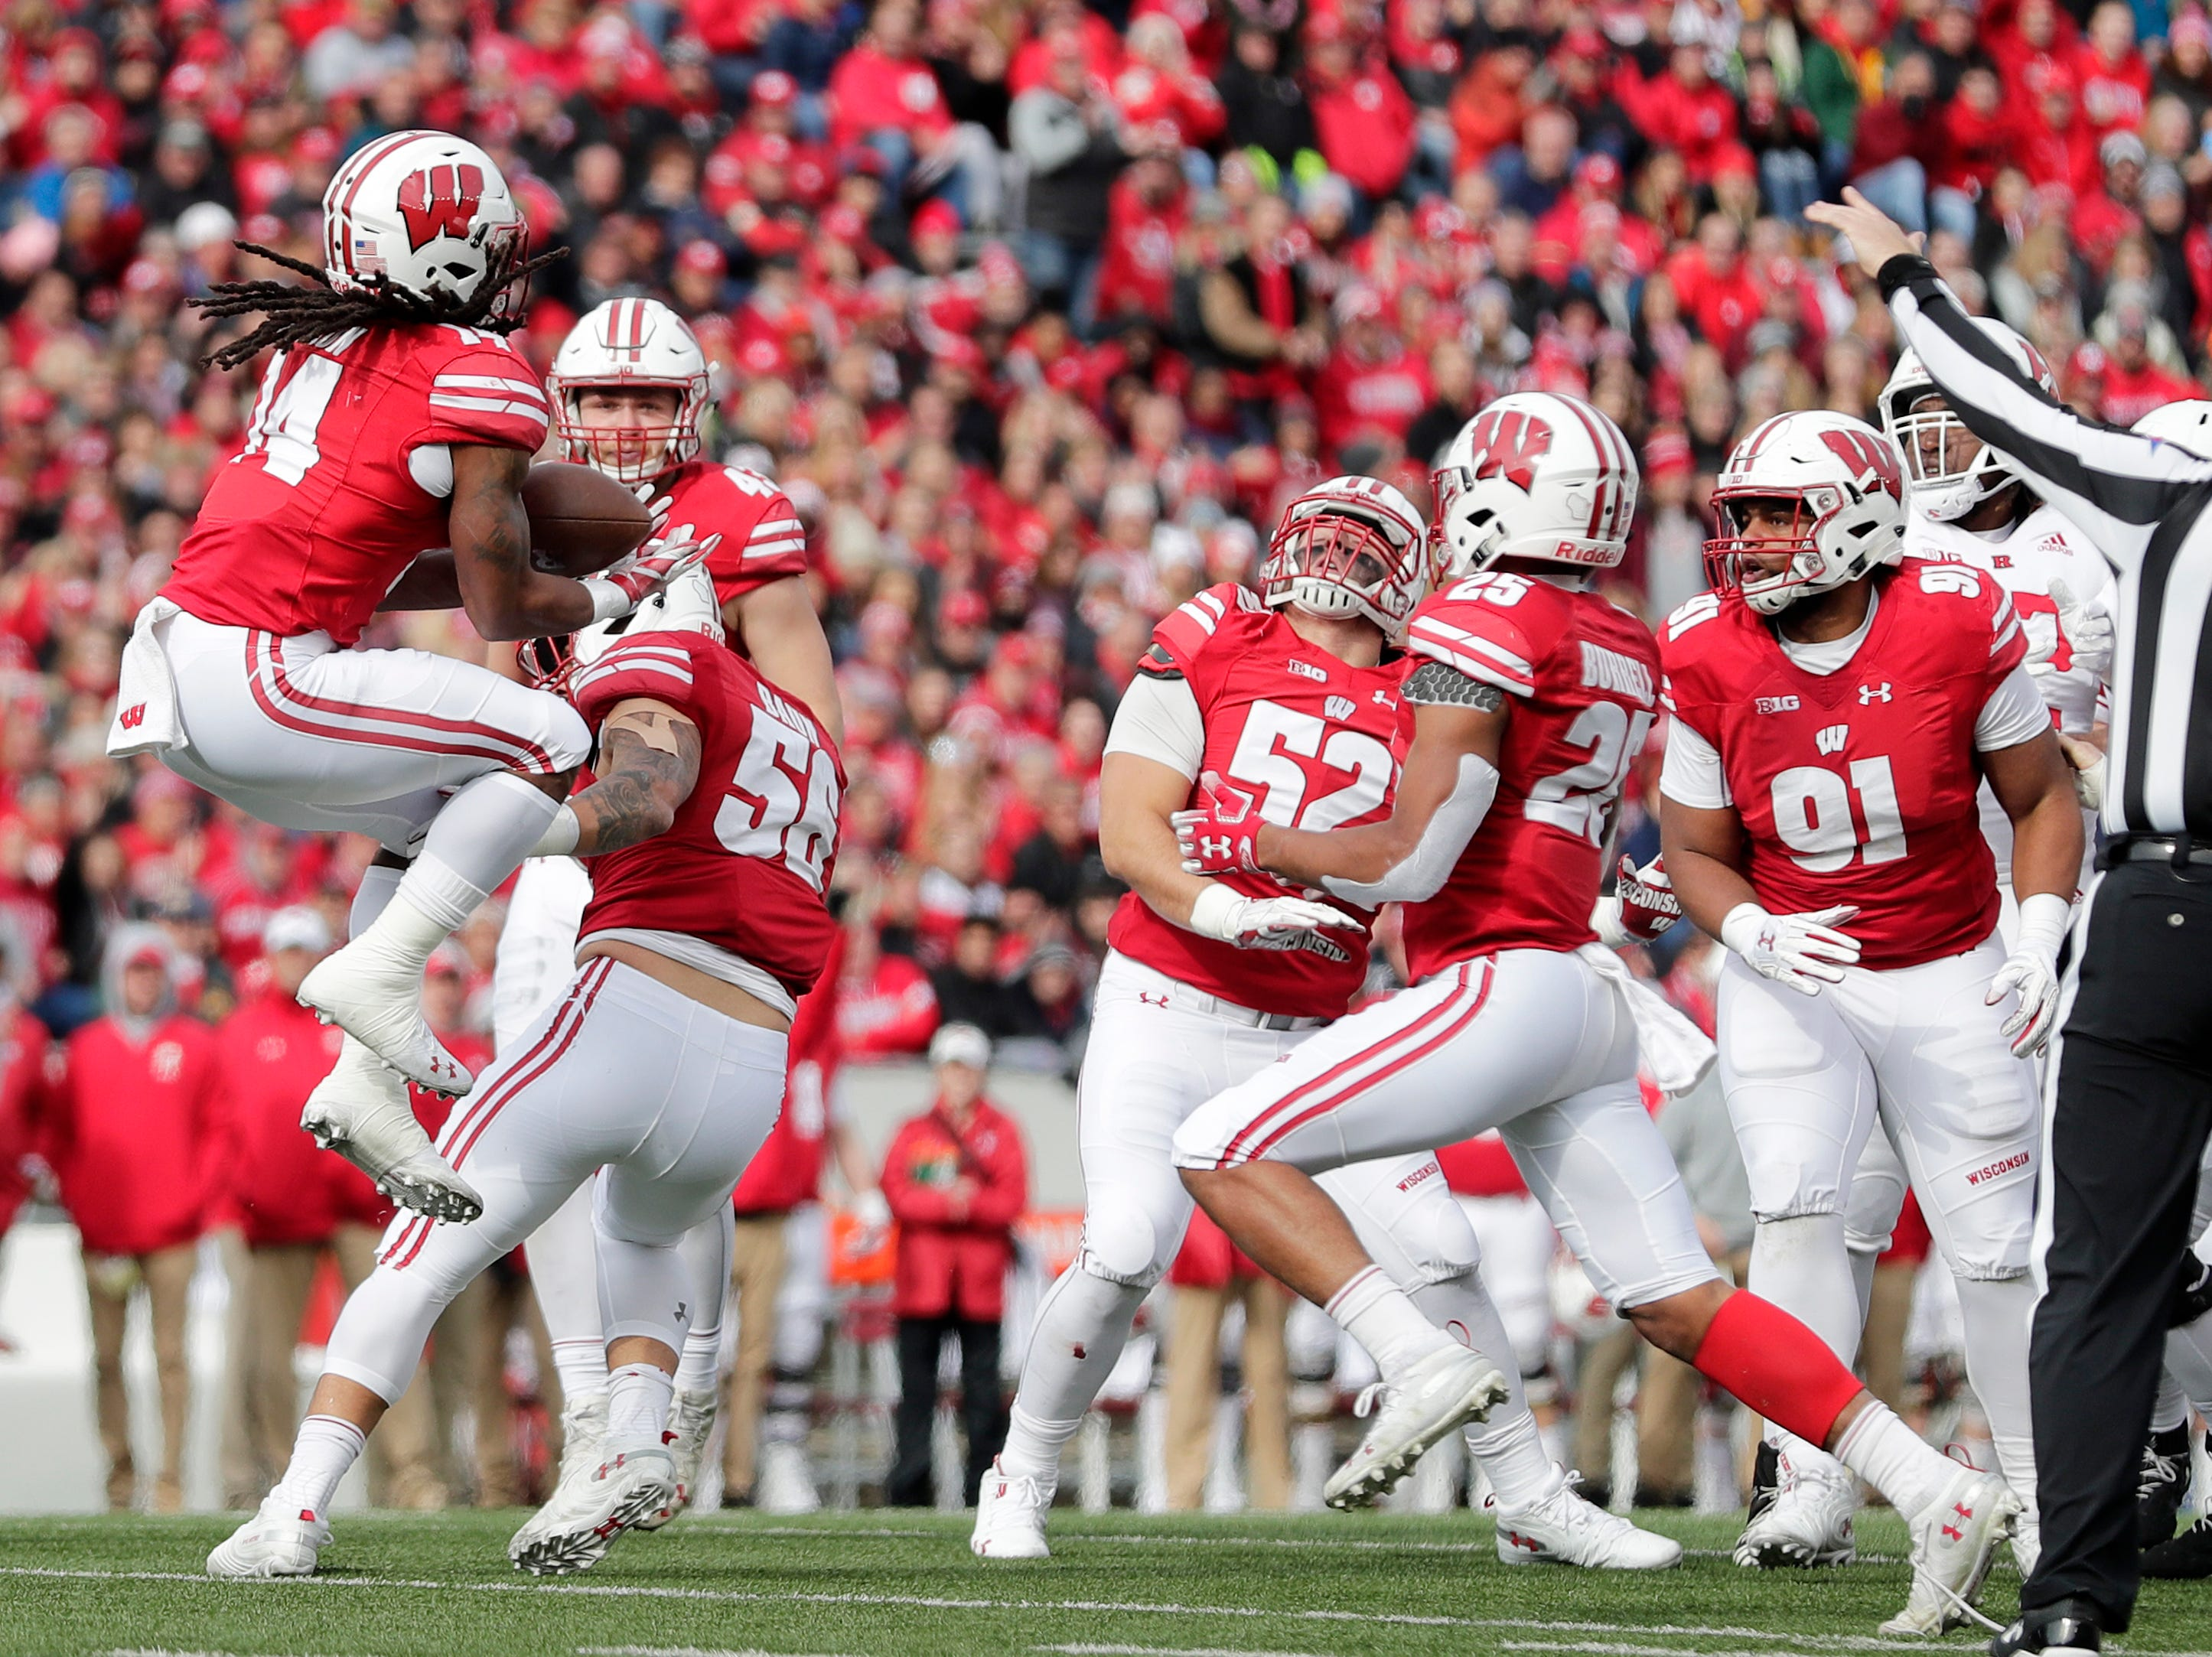 Wisconsin Badgers safety D'Cota Dixon (14) recovers a blocked punt against the Rutgers Scarlet Knights in the second quarterof a Big Ten football game at Camp Randall Stadium on Saturday, November 3, 2018 in Madison, Wis.Adam Wesley/USA TODAY NETWORK-Wisconsin